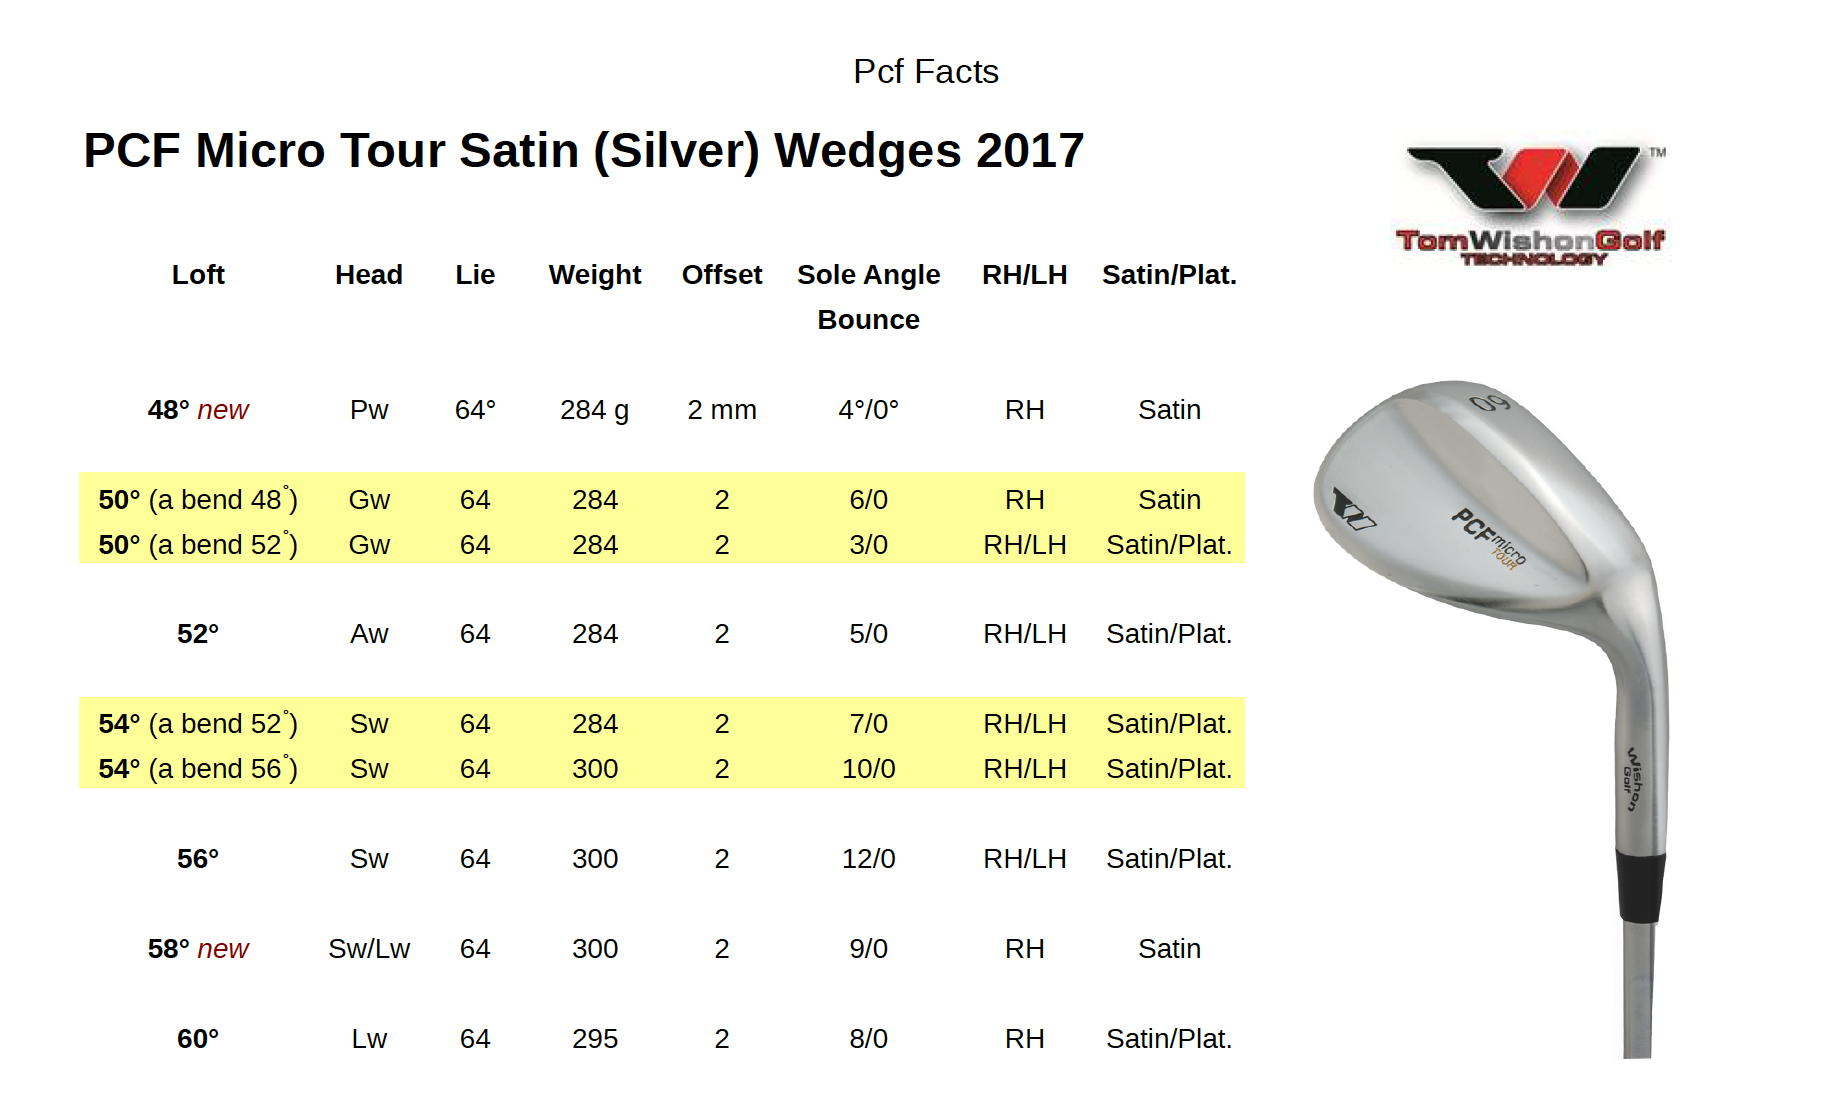 PCF Micro Tour Satin (Silver) Wedges 2017